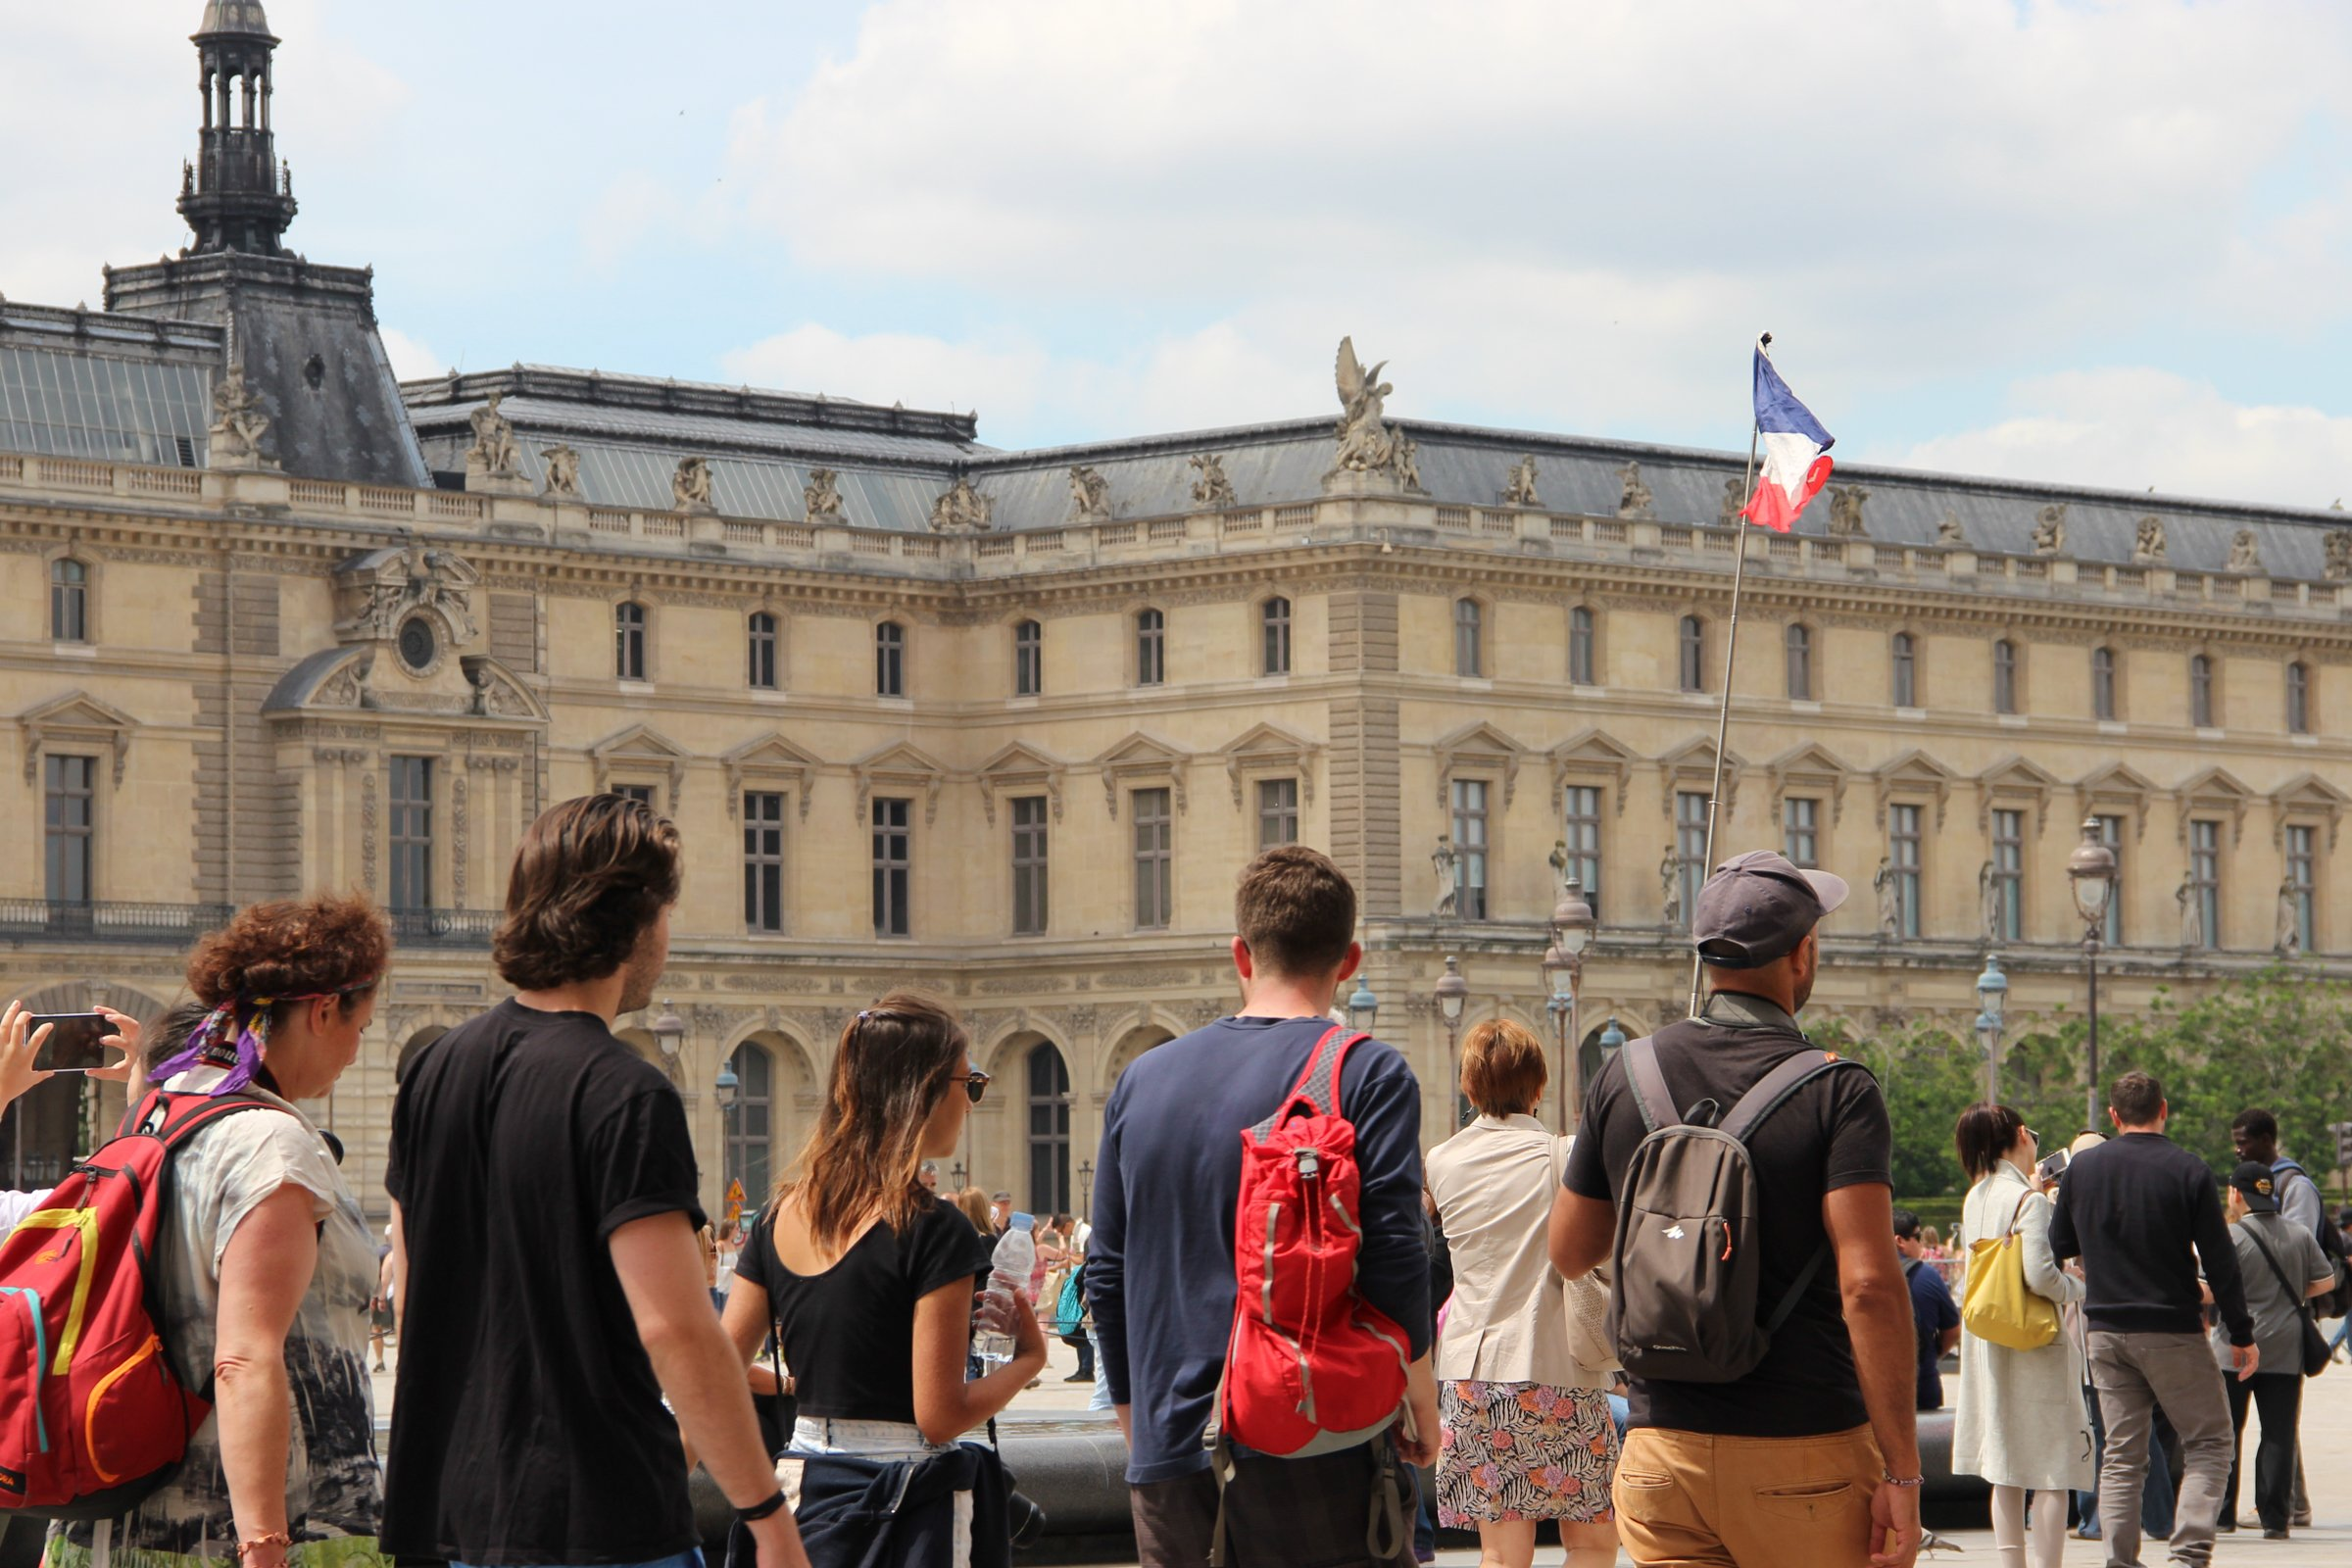 Tourists In Museum Courtyard